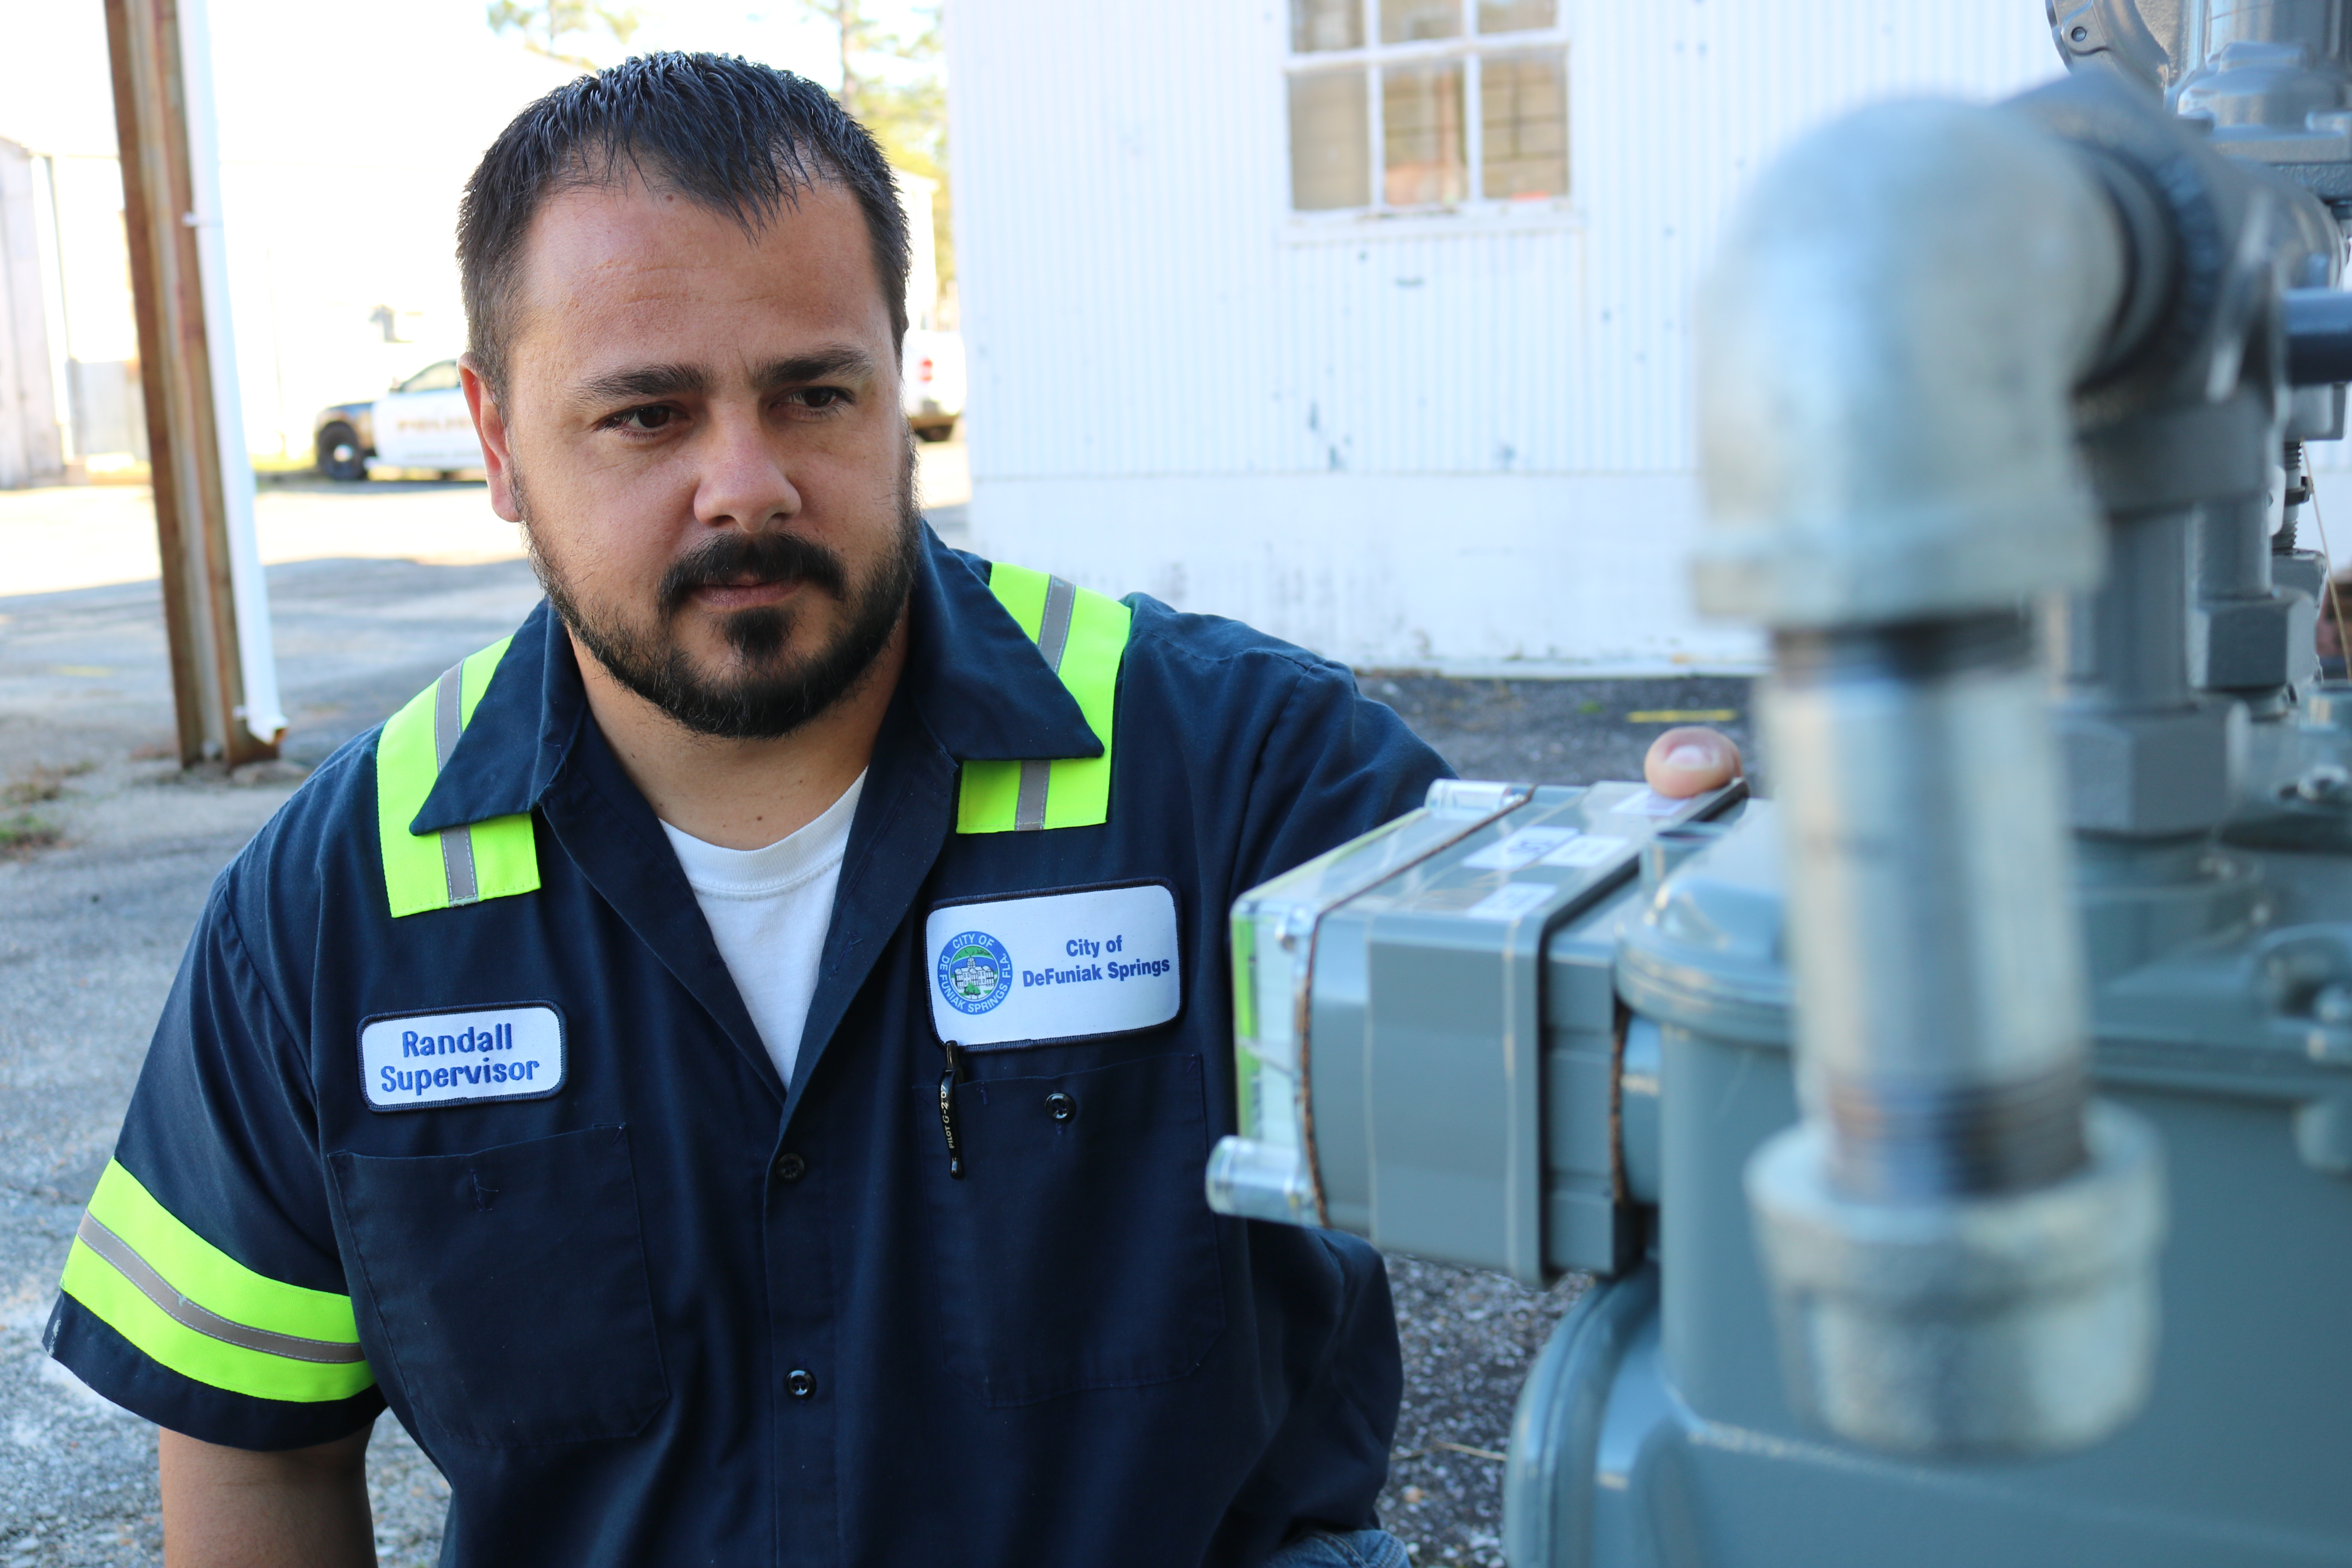 Man in public works uniform looking at a natural gas meter